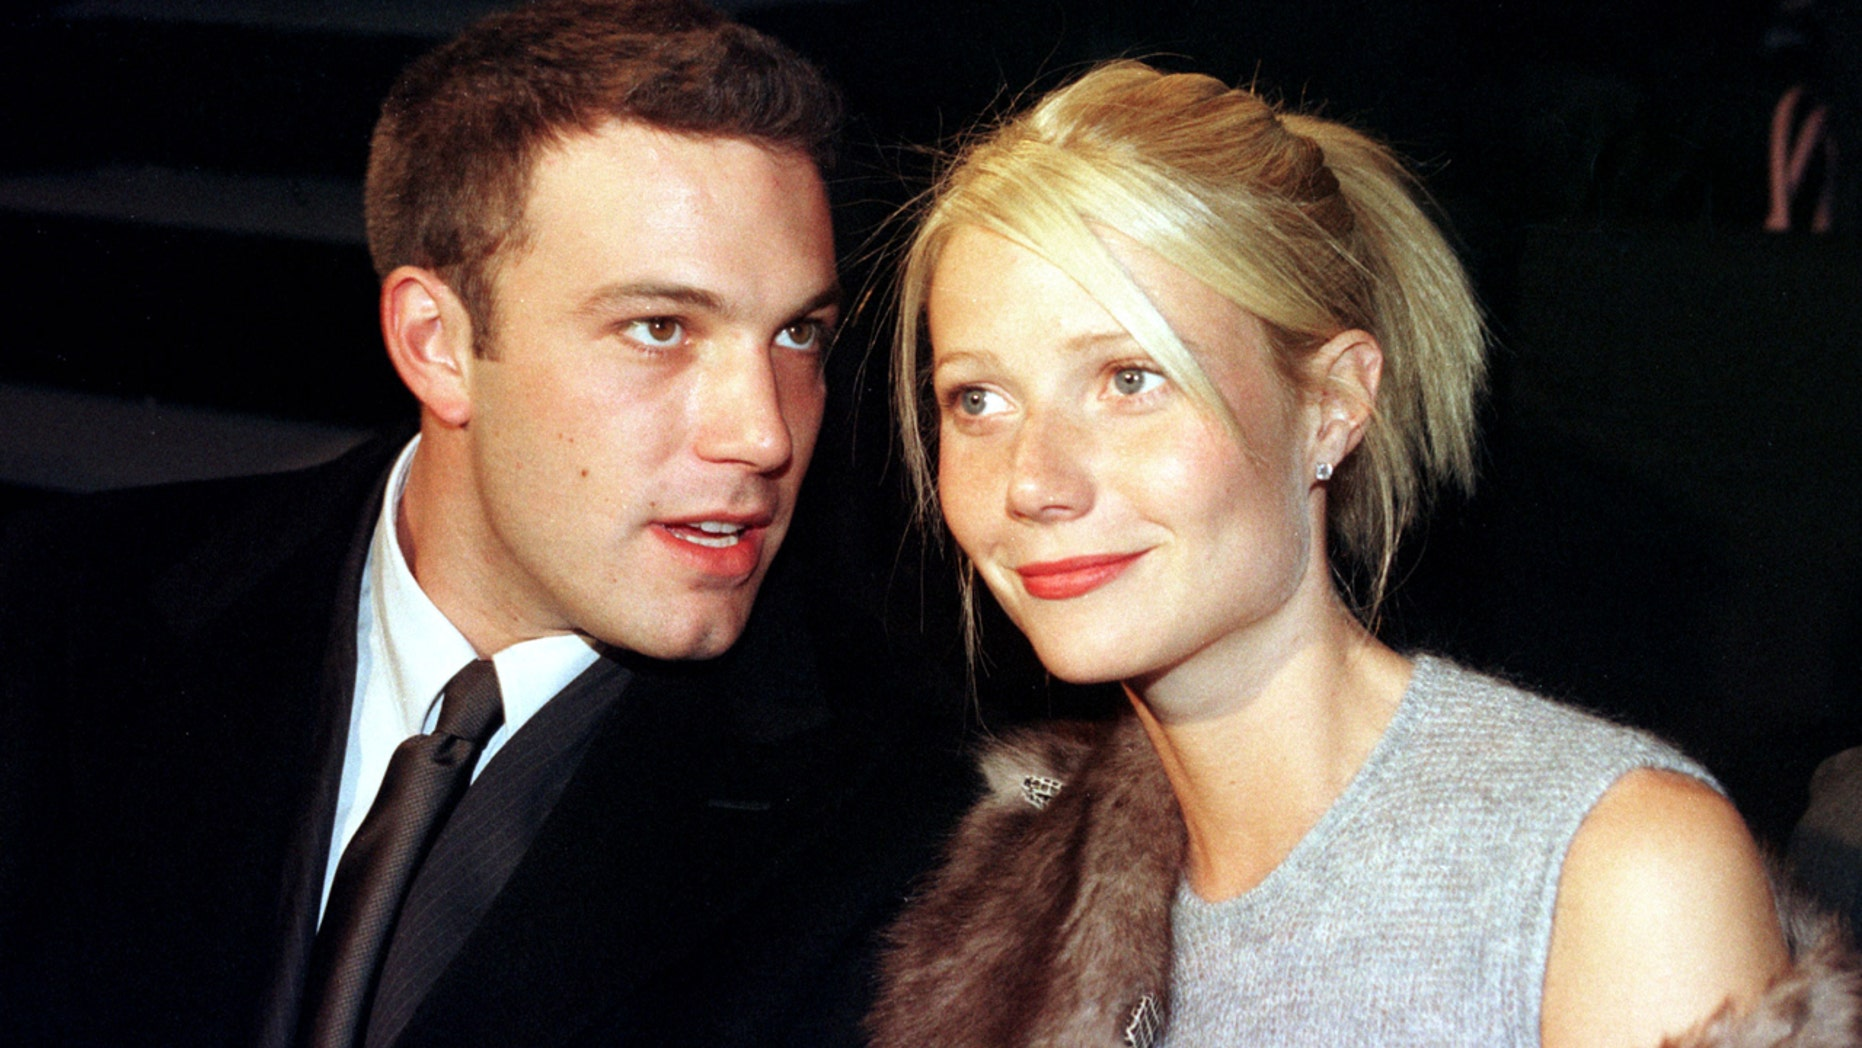 Actress Gwyneth Paltrow reveals why she decided never to marry Ben Affleck.